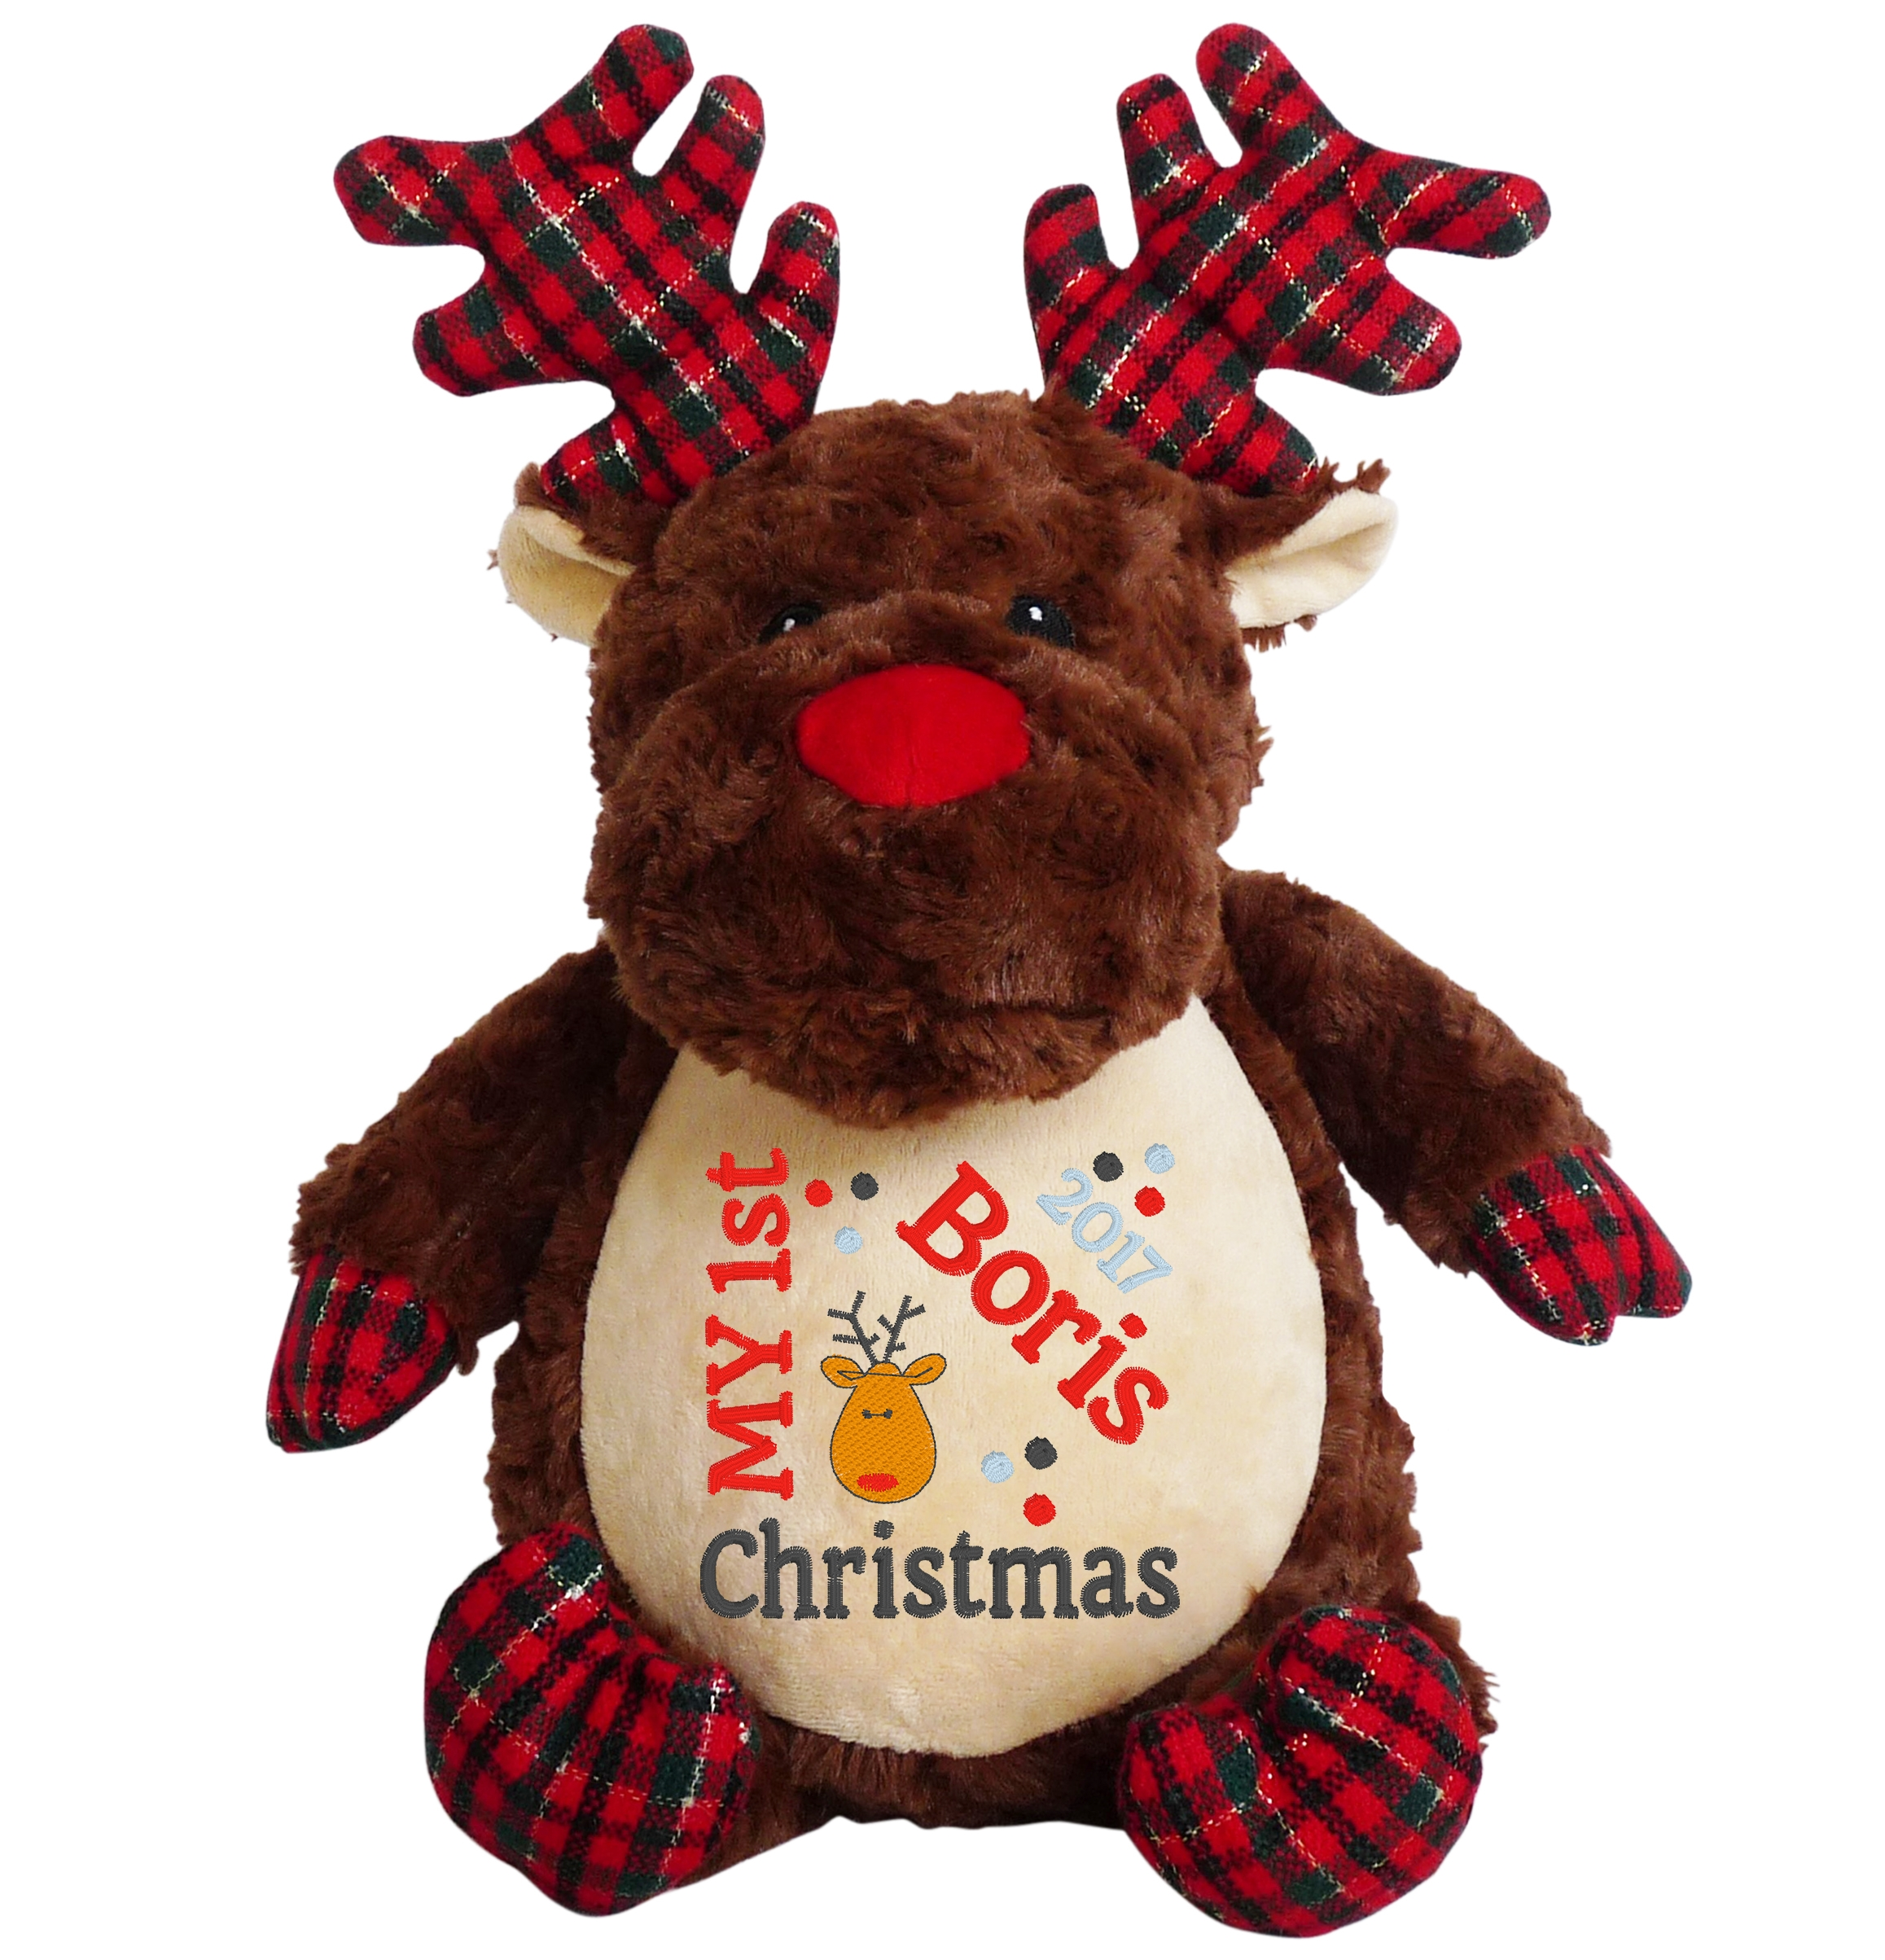 This+is+an+image+of+a+Prancer+Reindeer+1st+Christmas+Gift+from+My+Teddy